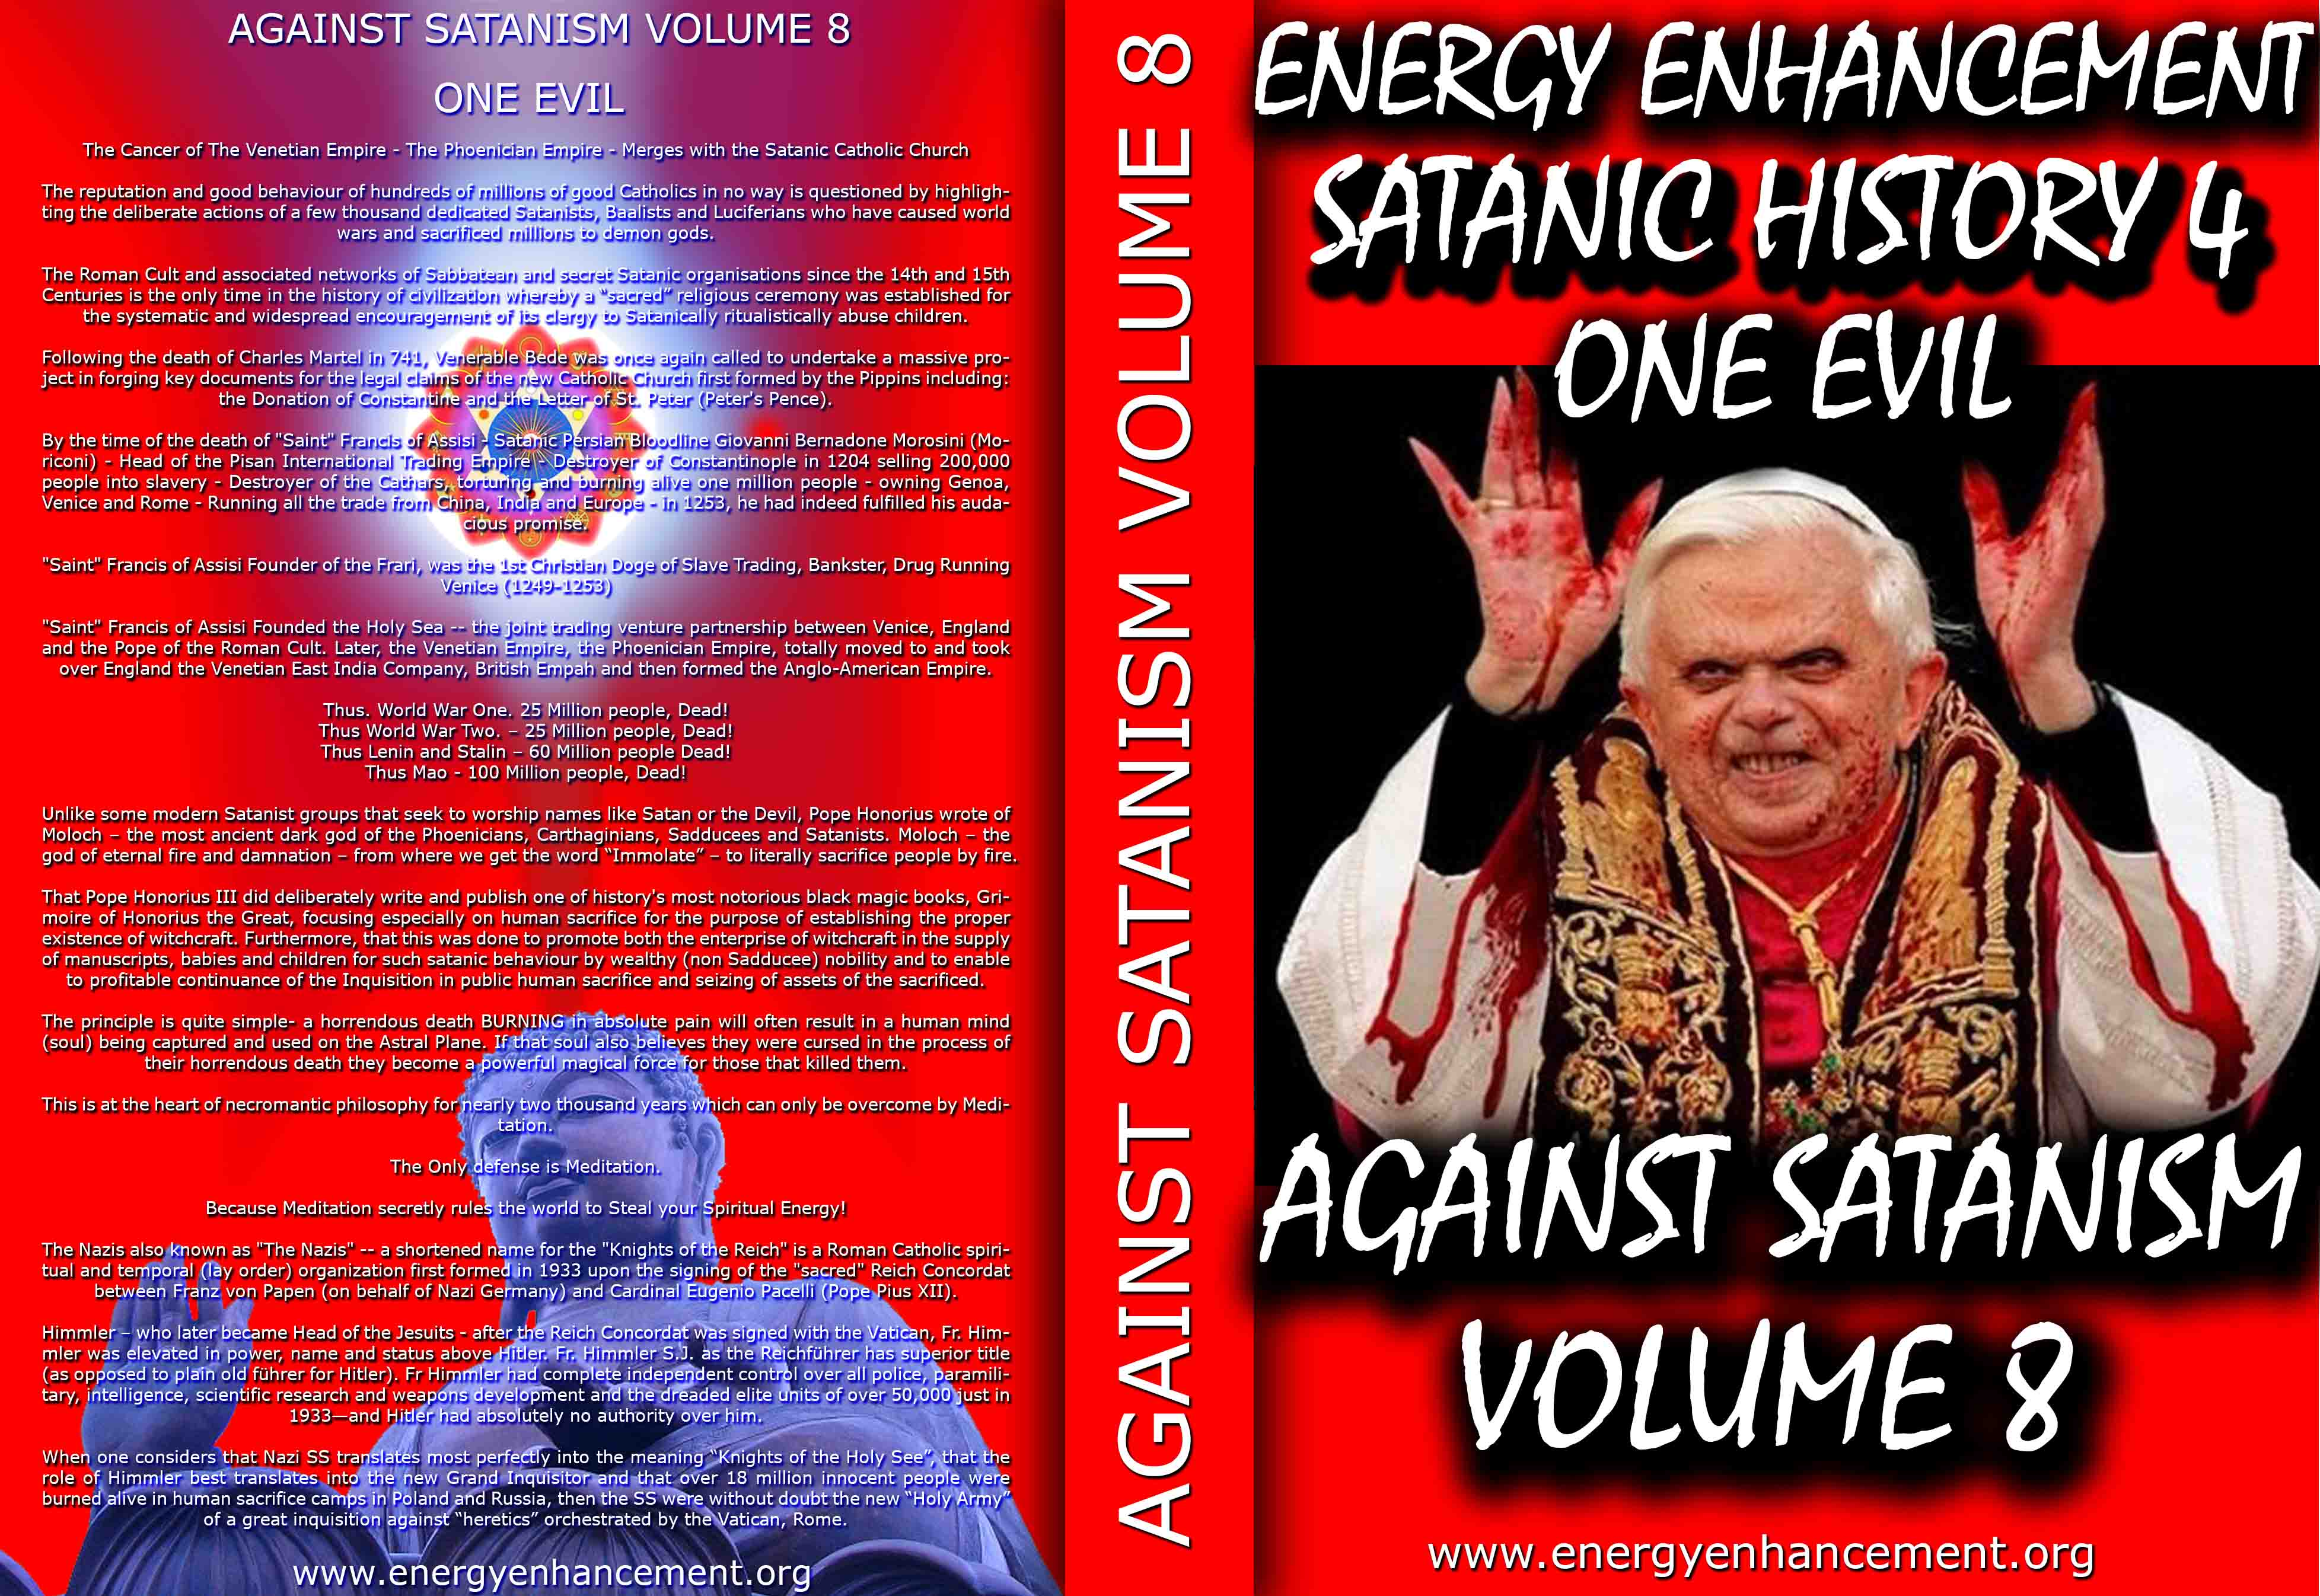 Description: Description: C:\wnew\Sacred-Energy\Against-Satanism-Volume-8\oneevil.jpg